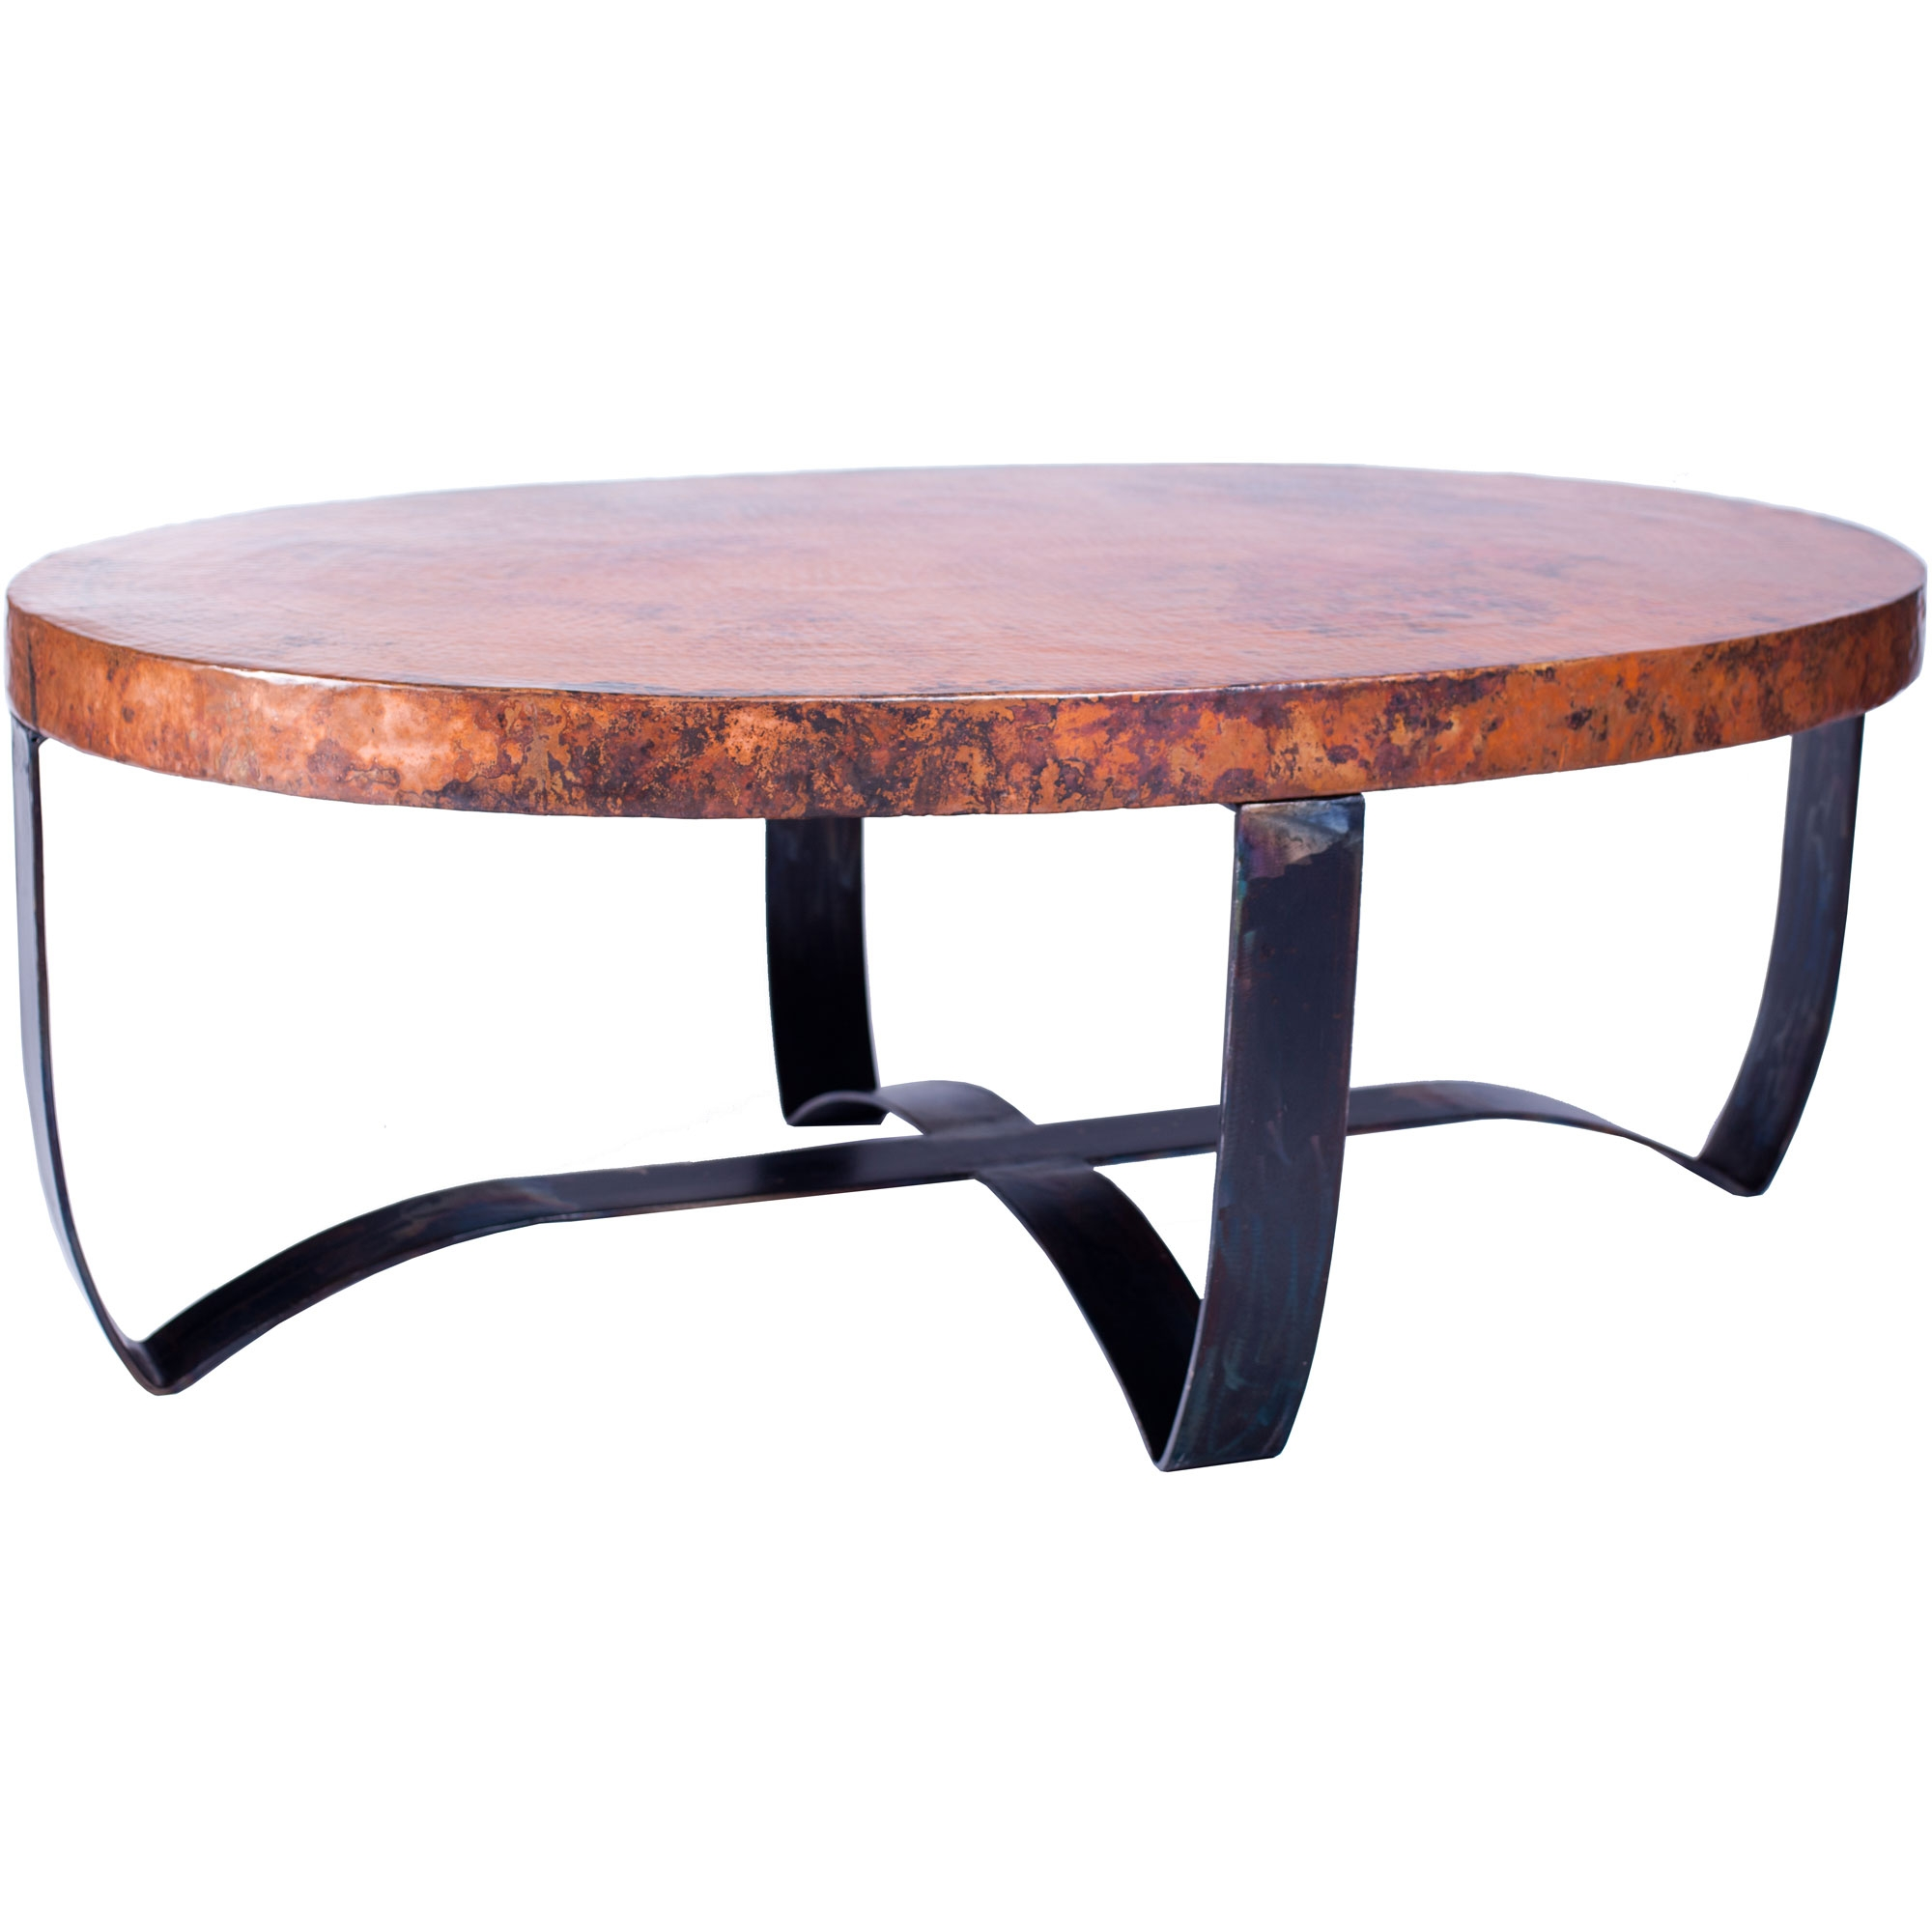 Pictured Is The Oval Strap Cocktail Table Base Available In 3 Finish Options And Supports A 48